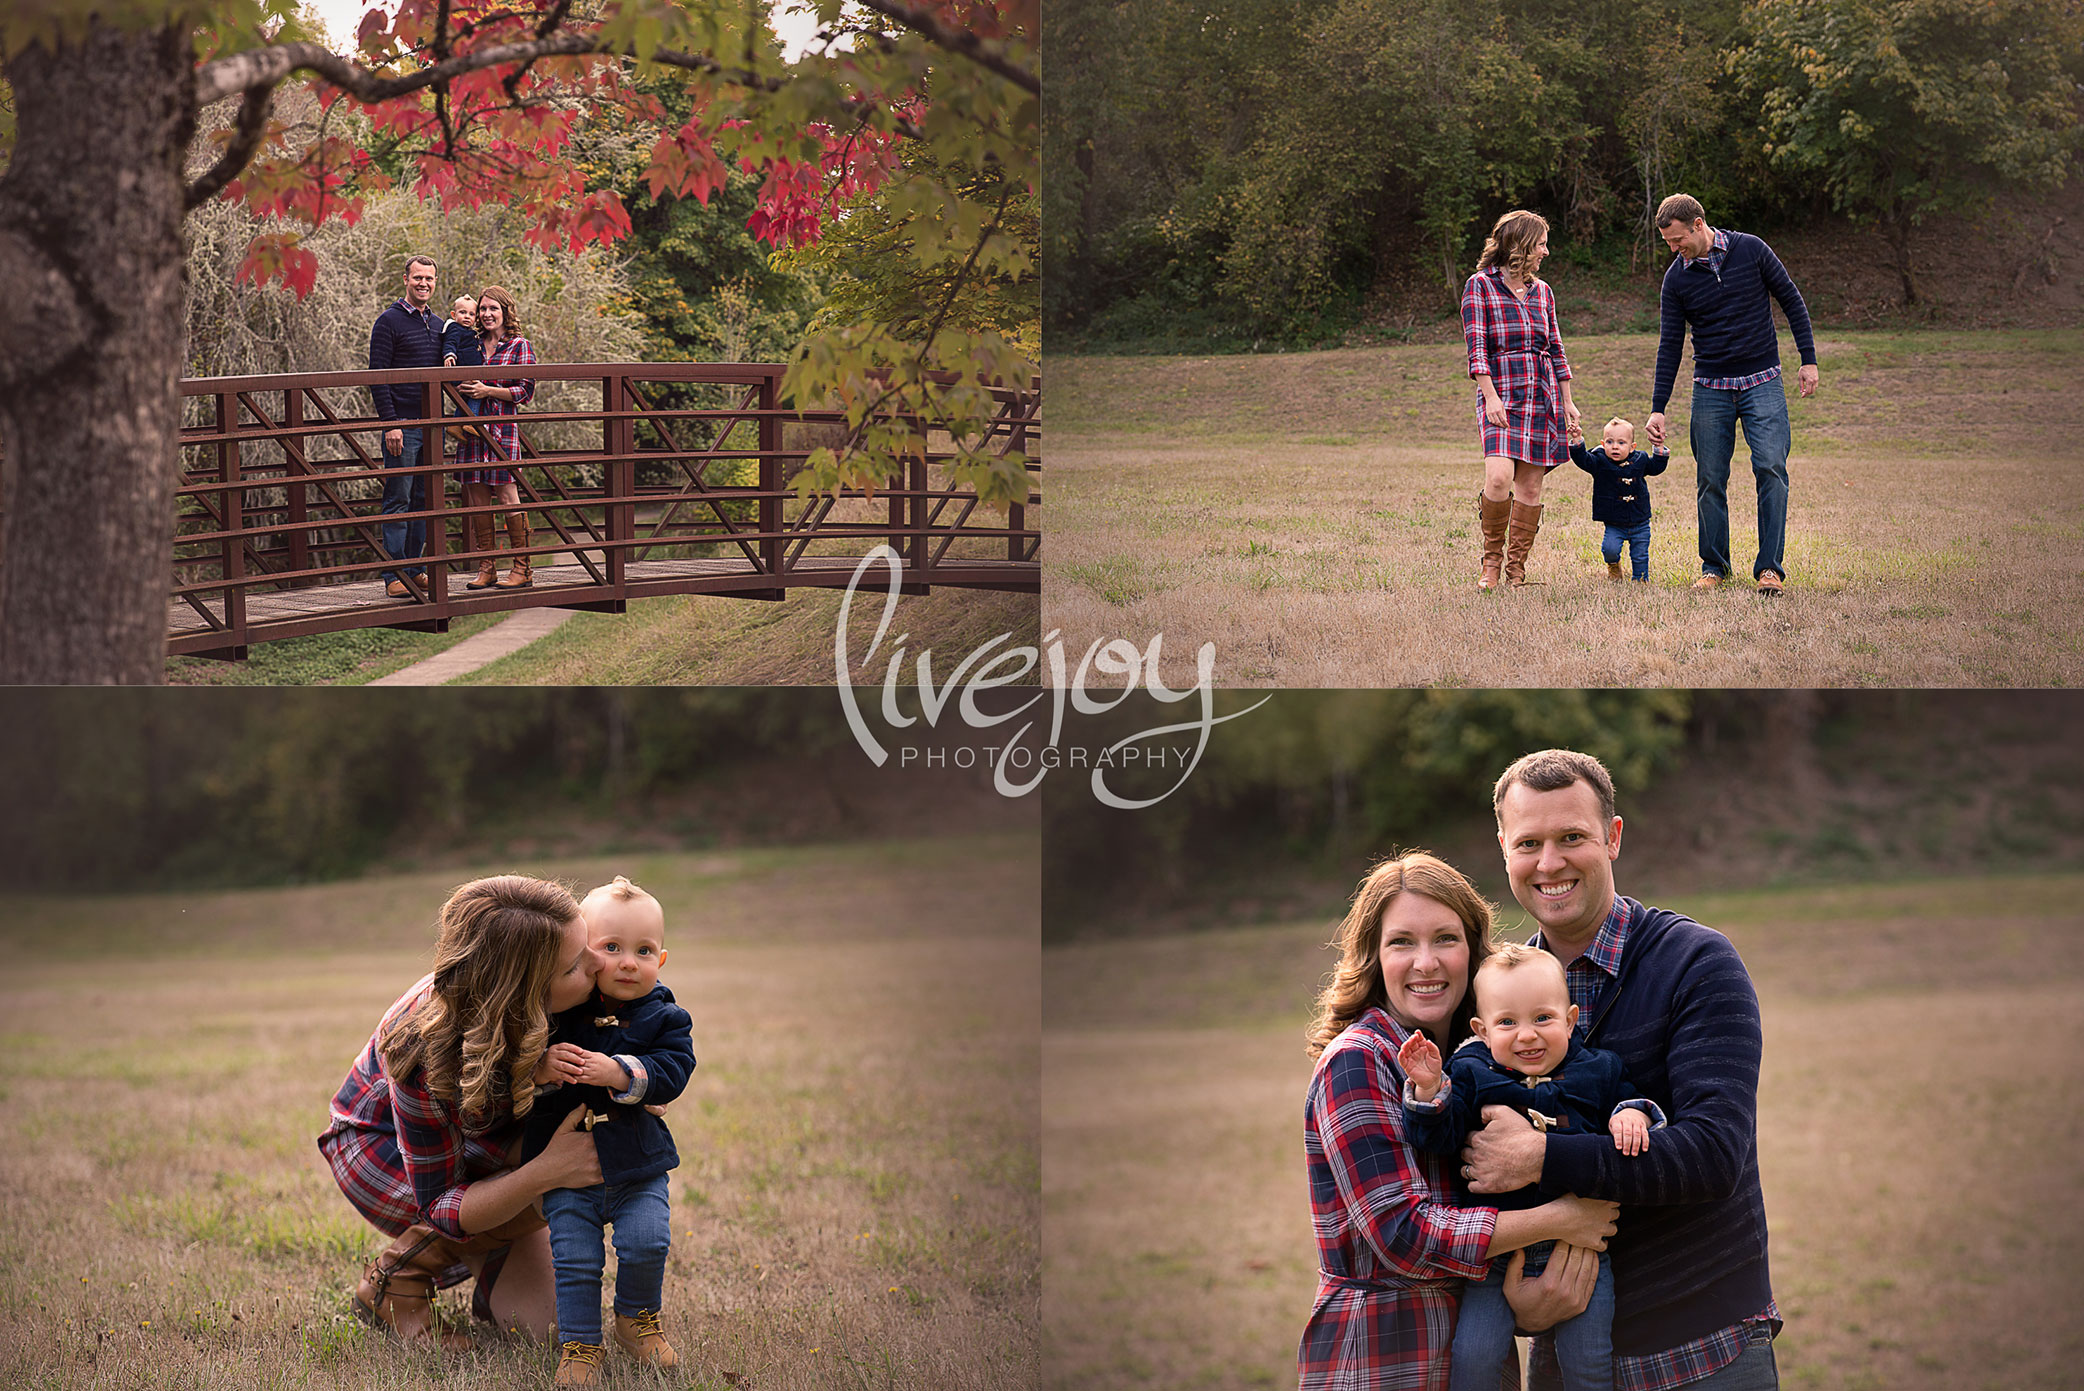 Fall Family Photography | Oregon | Livejoy Photography